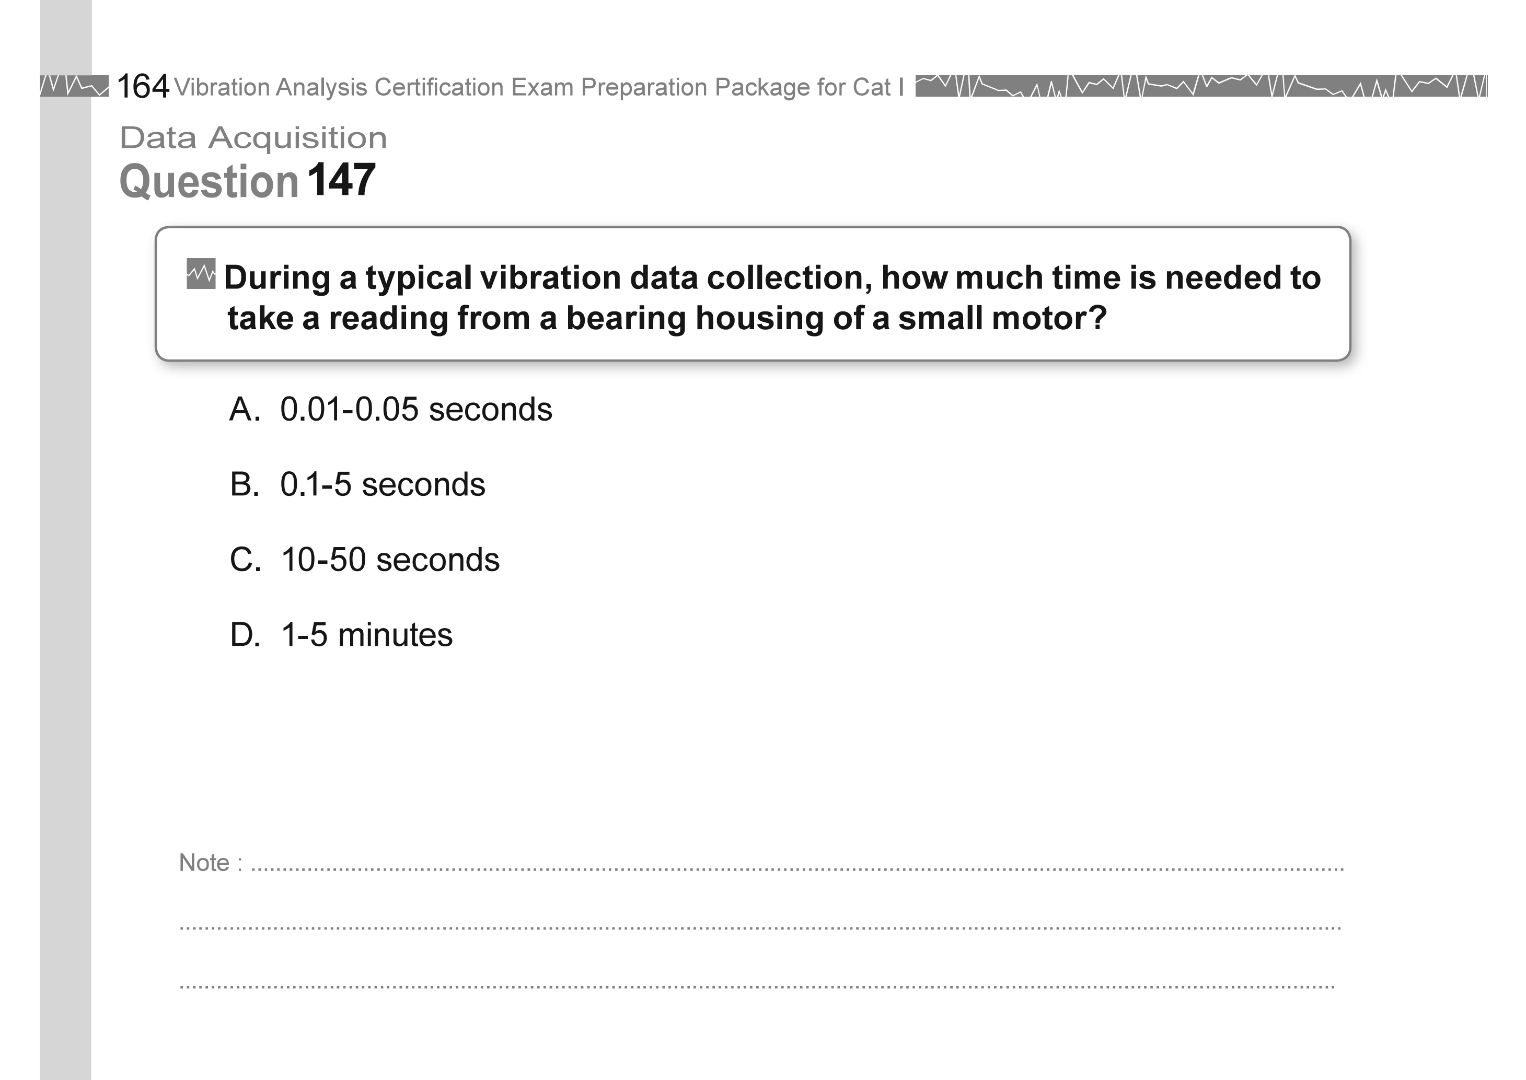 Vibration Analysis Certification Exam Category I Data Acquisition Ques.png